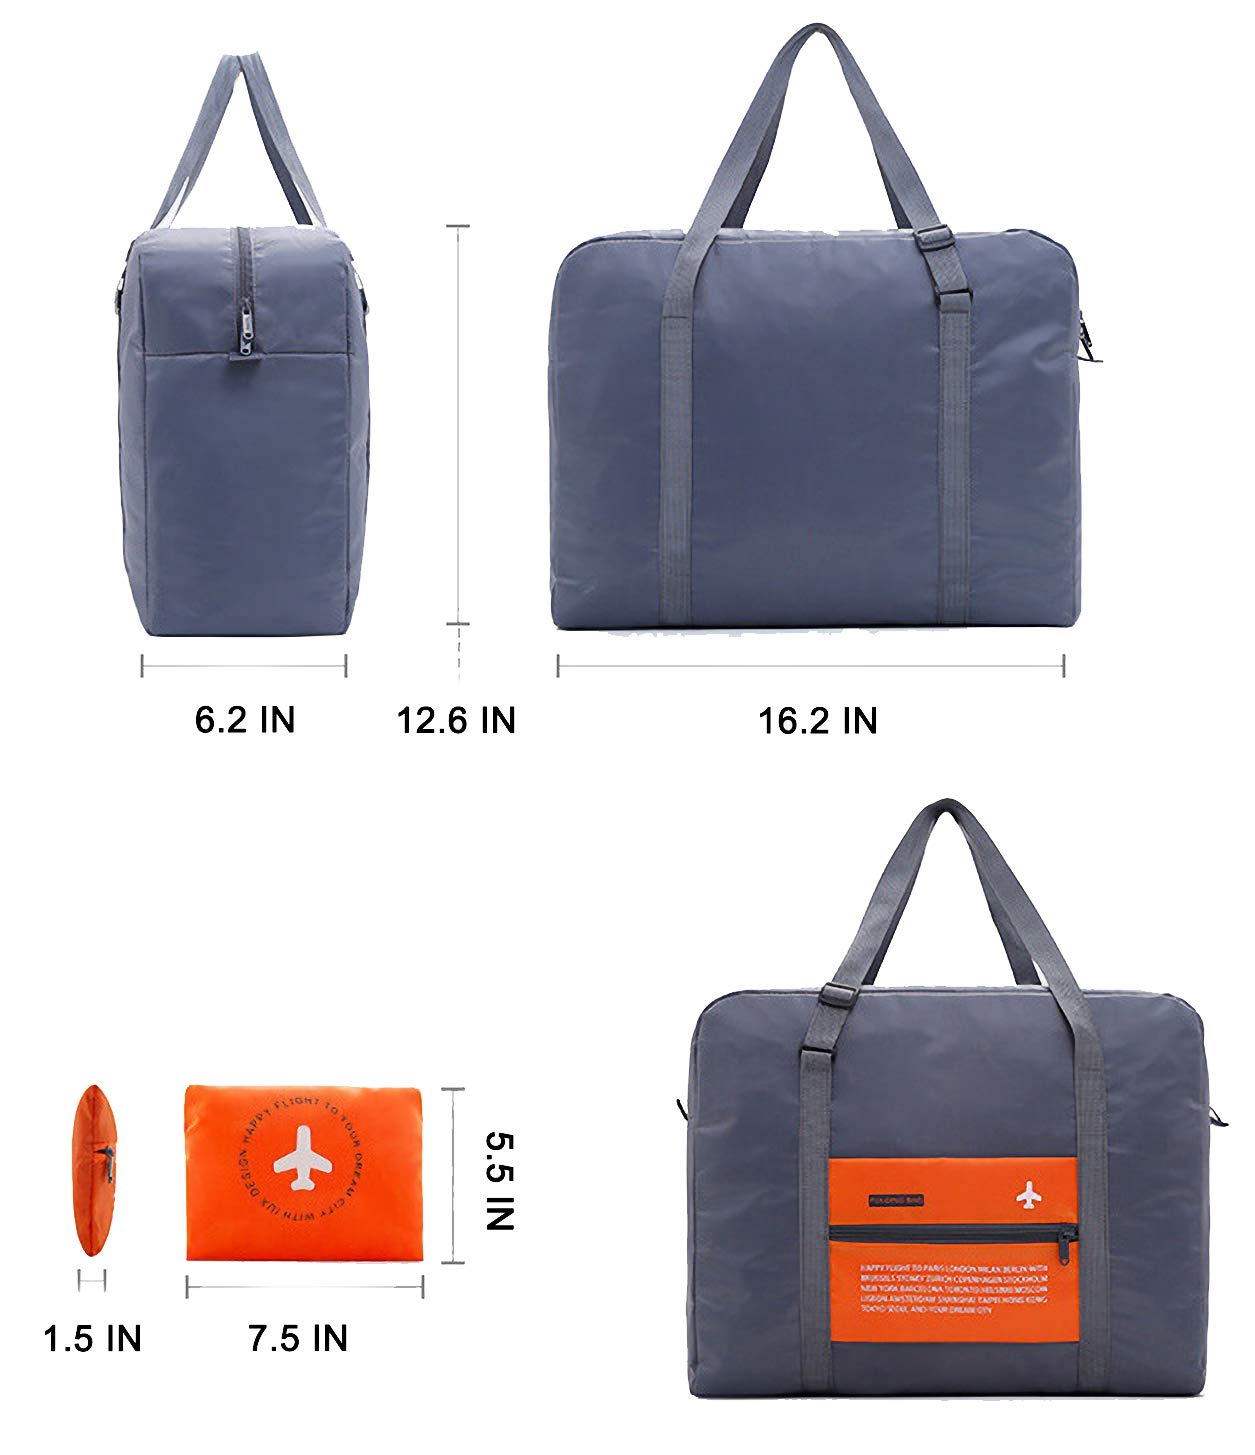 CHYOUL Travel Foldable Packable Lightweight High Capacity Luggage Duffle Tote Bag Orange by CHYOUL (Image #2)